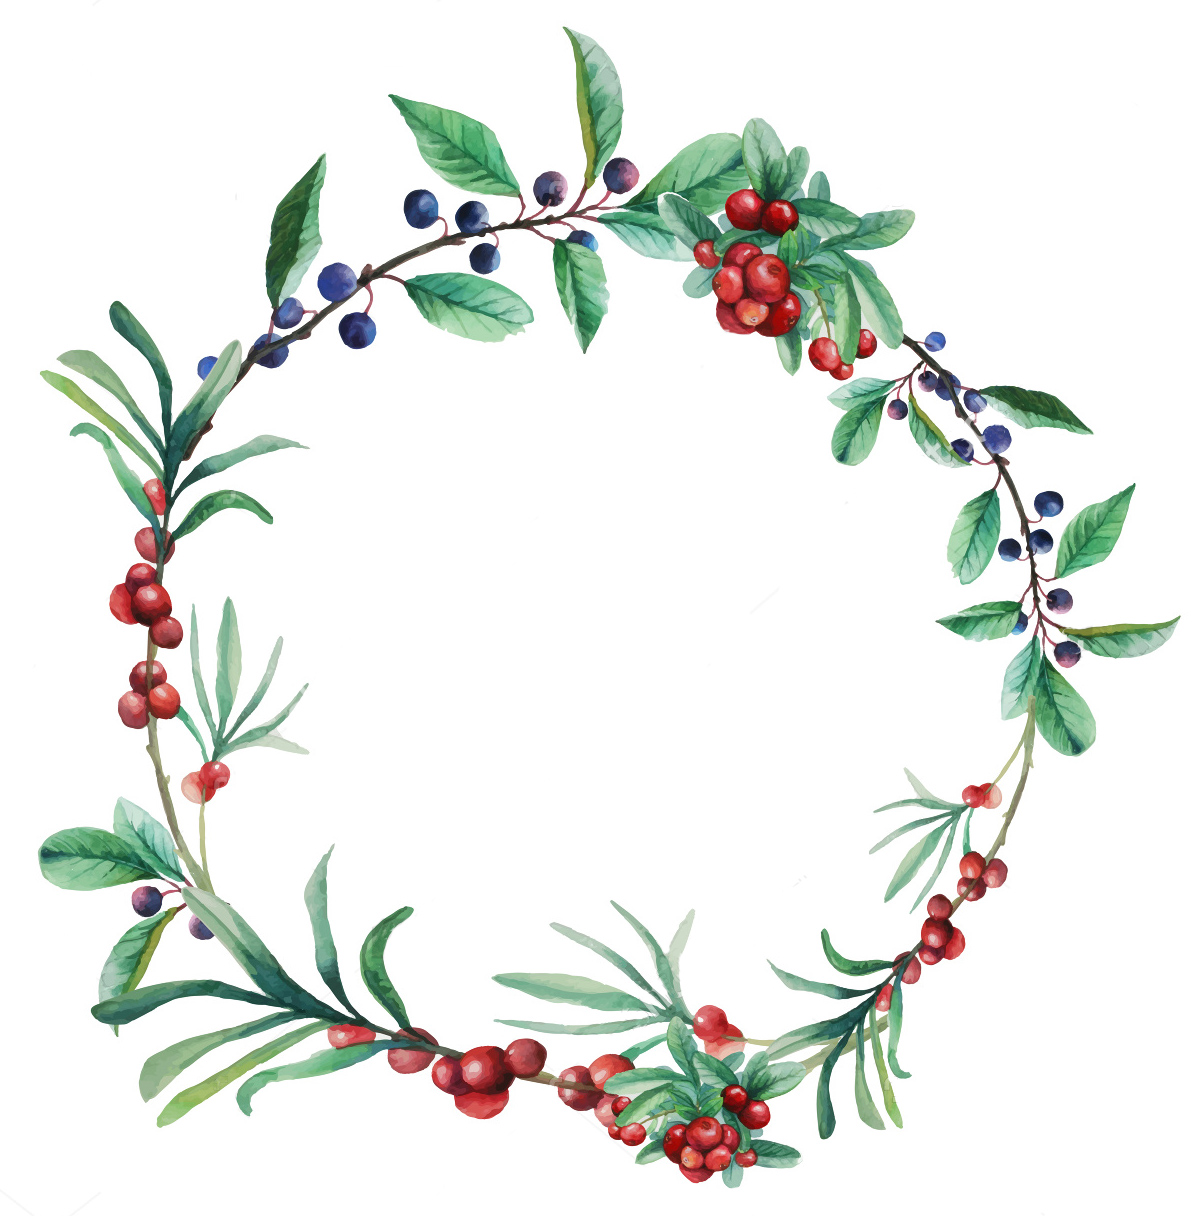 1200x1216 Stock Vector Watercolor Wild Berries Frame Hand Drawn Floral